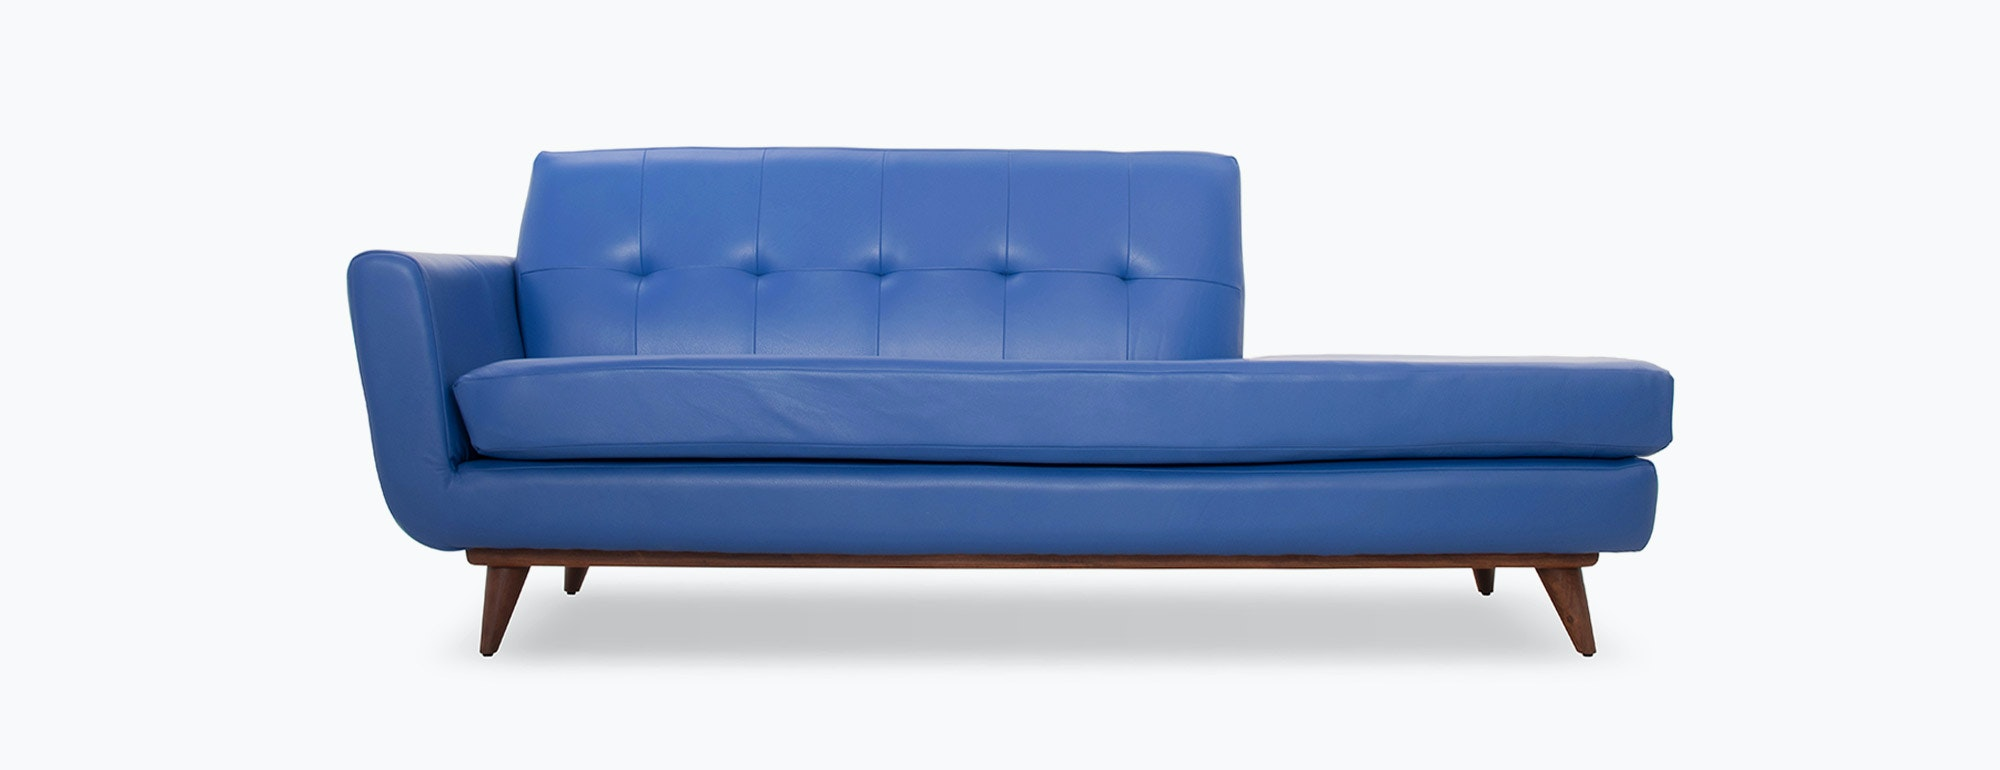 hughes leather chaise  joybird - shown in brighton matisse leather